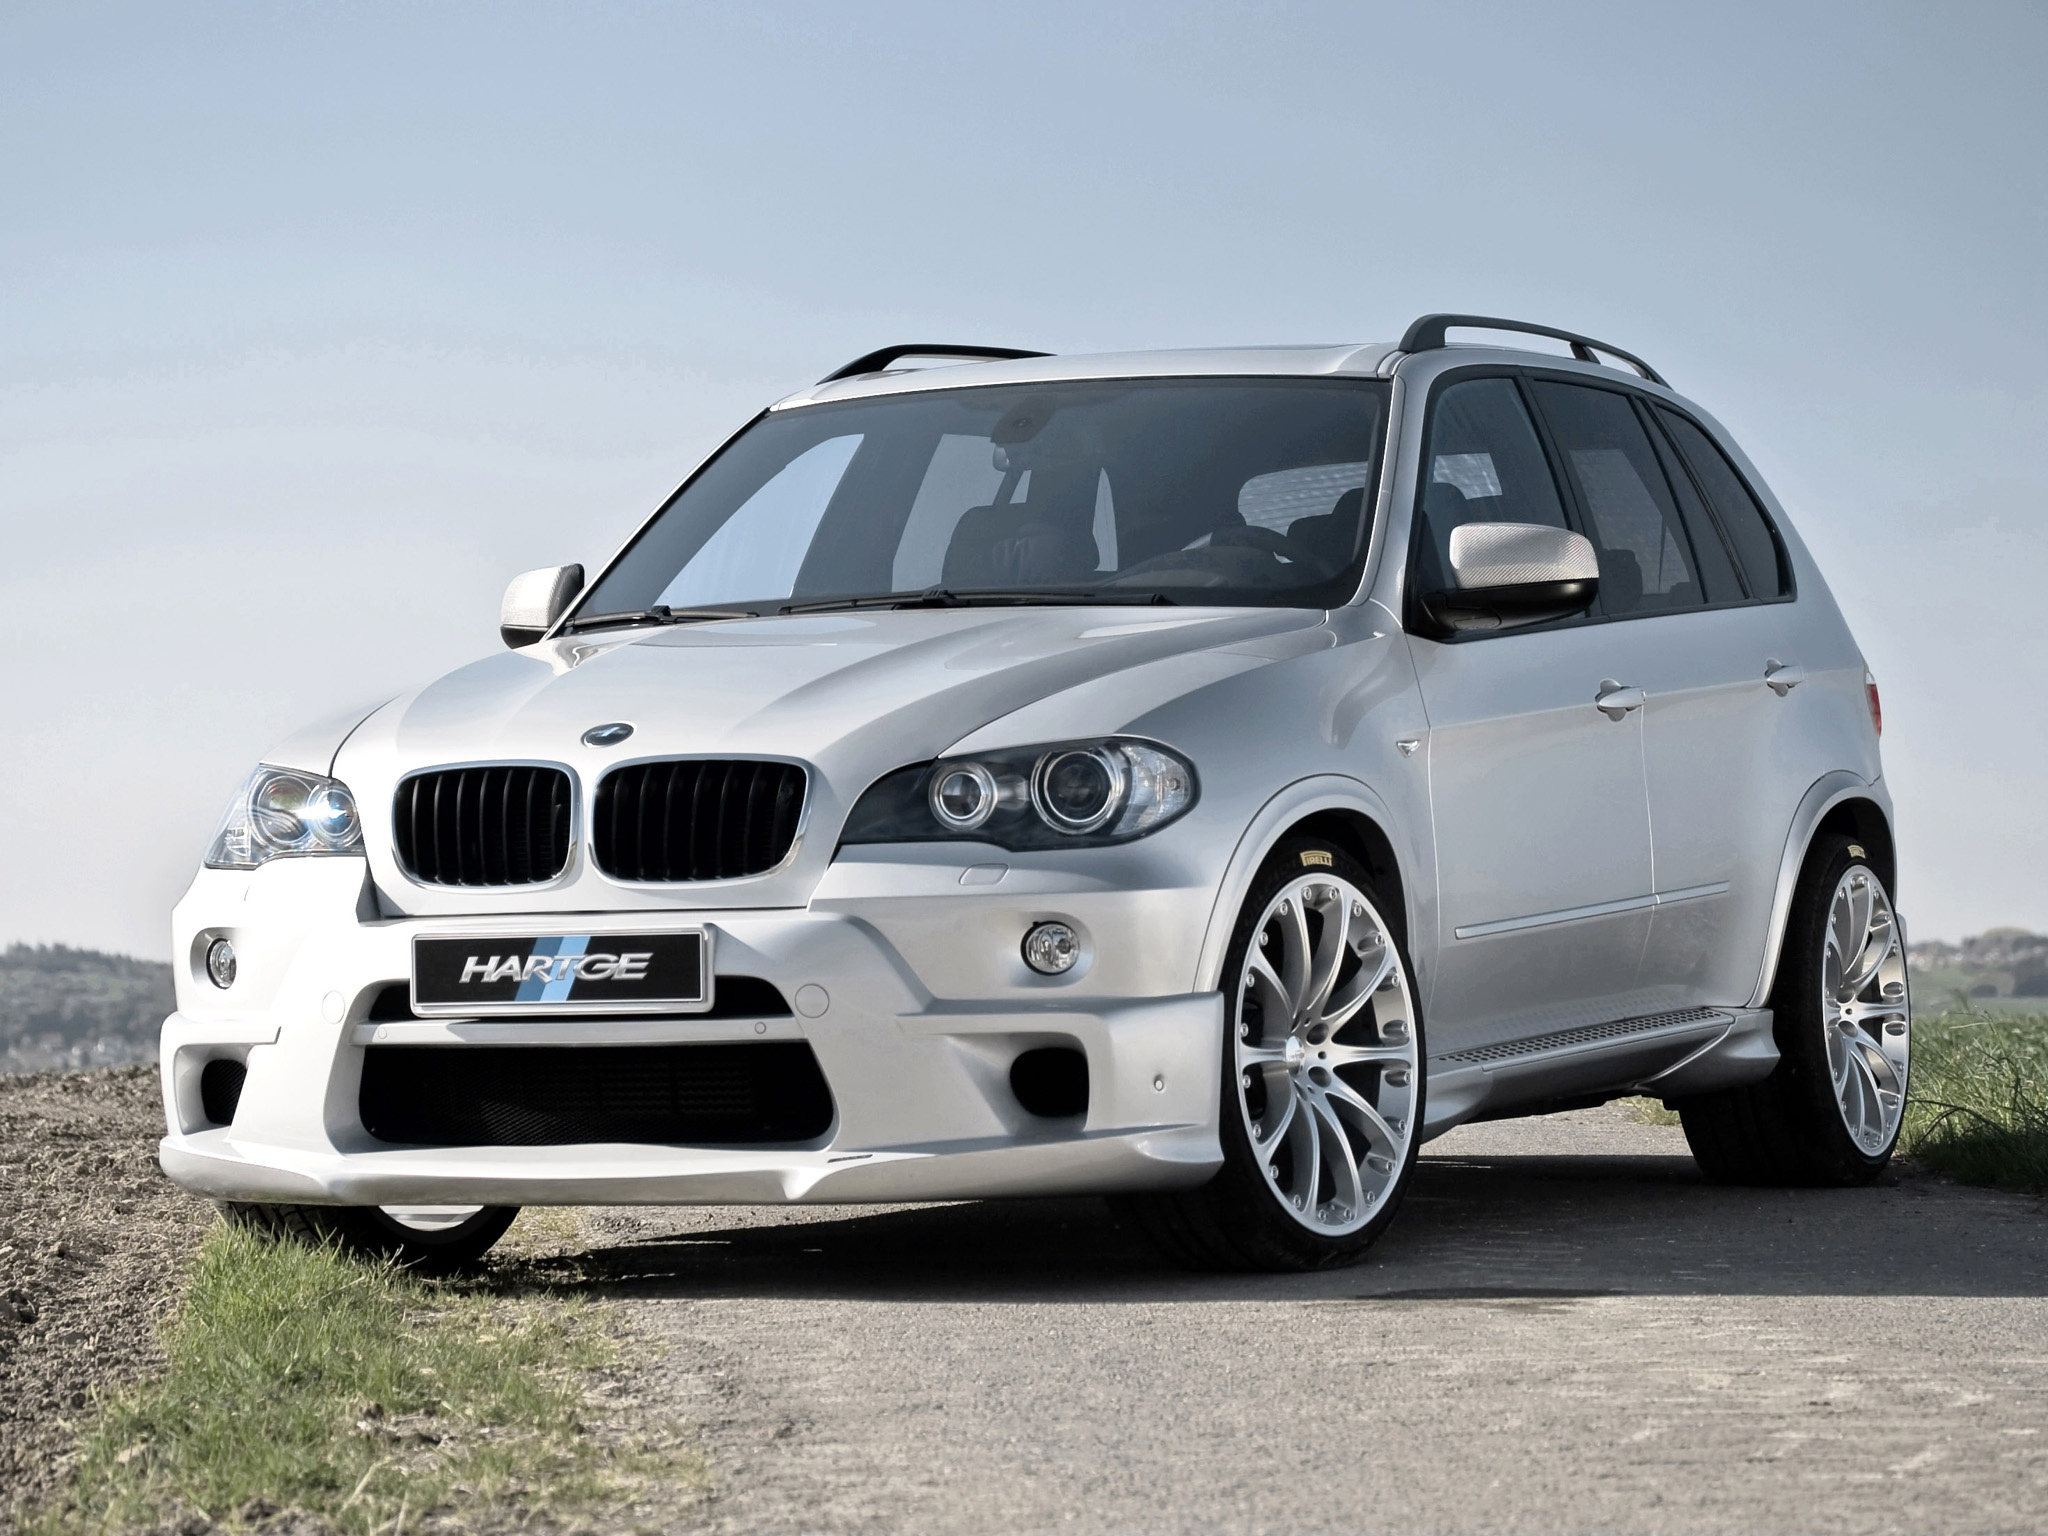 bmw x5 tuning wallpapers images photos pictures backgrounds. Black Bedroom Furniture Sets. Home Design Ideas